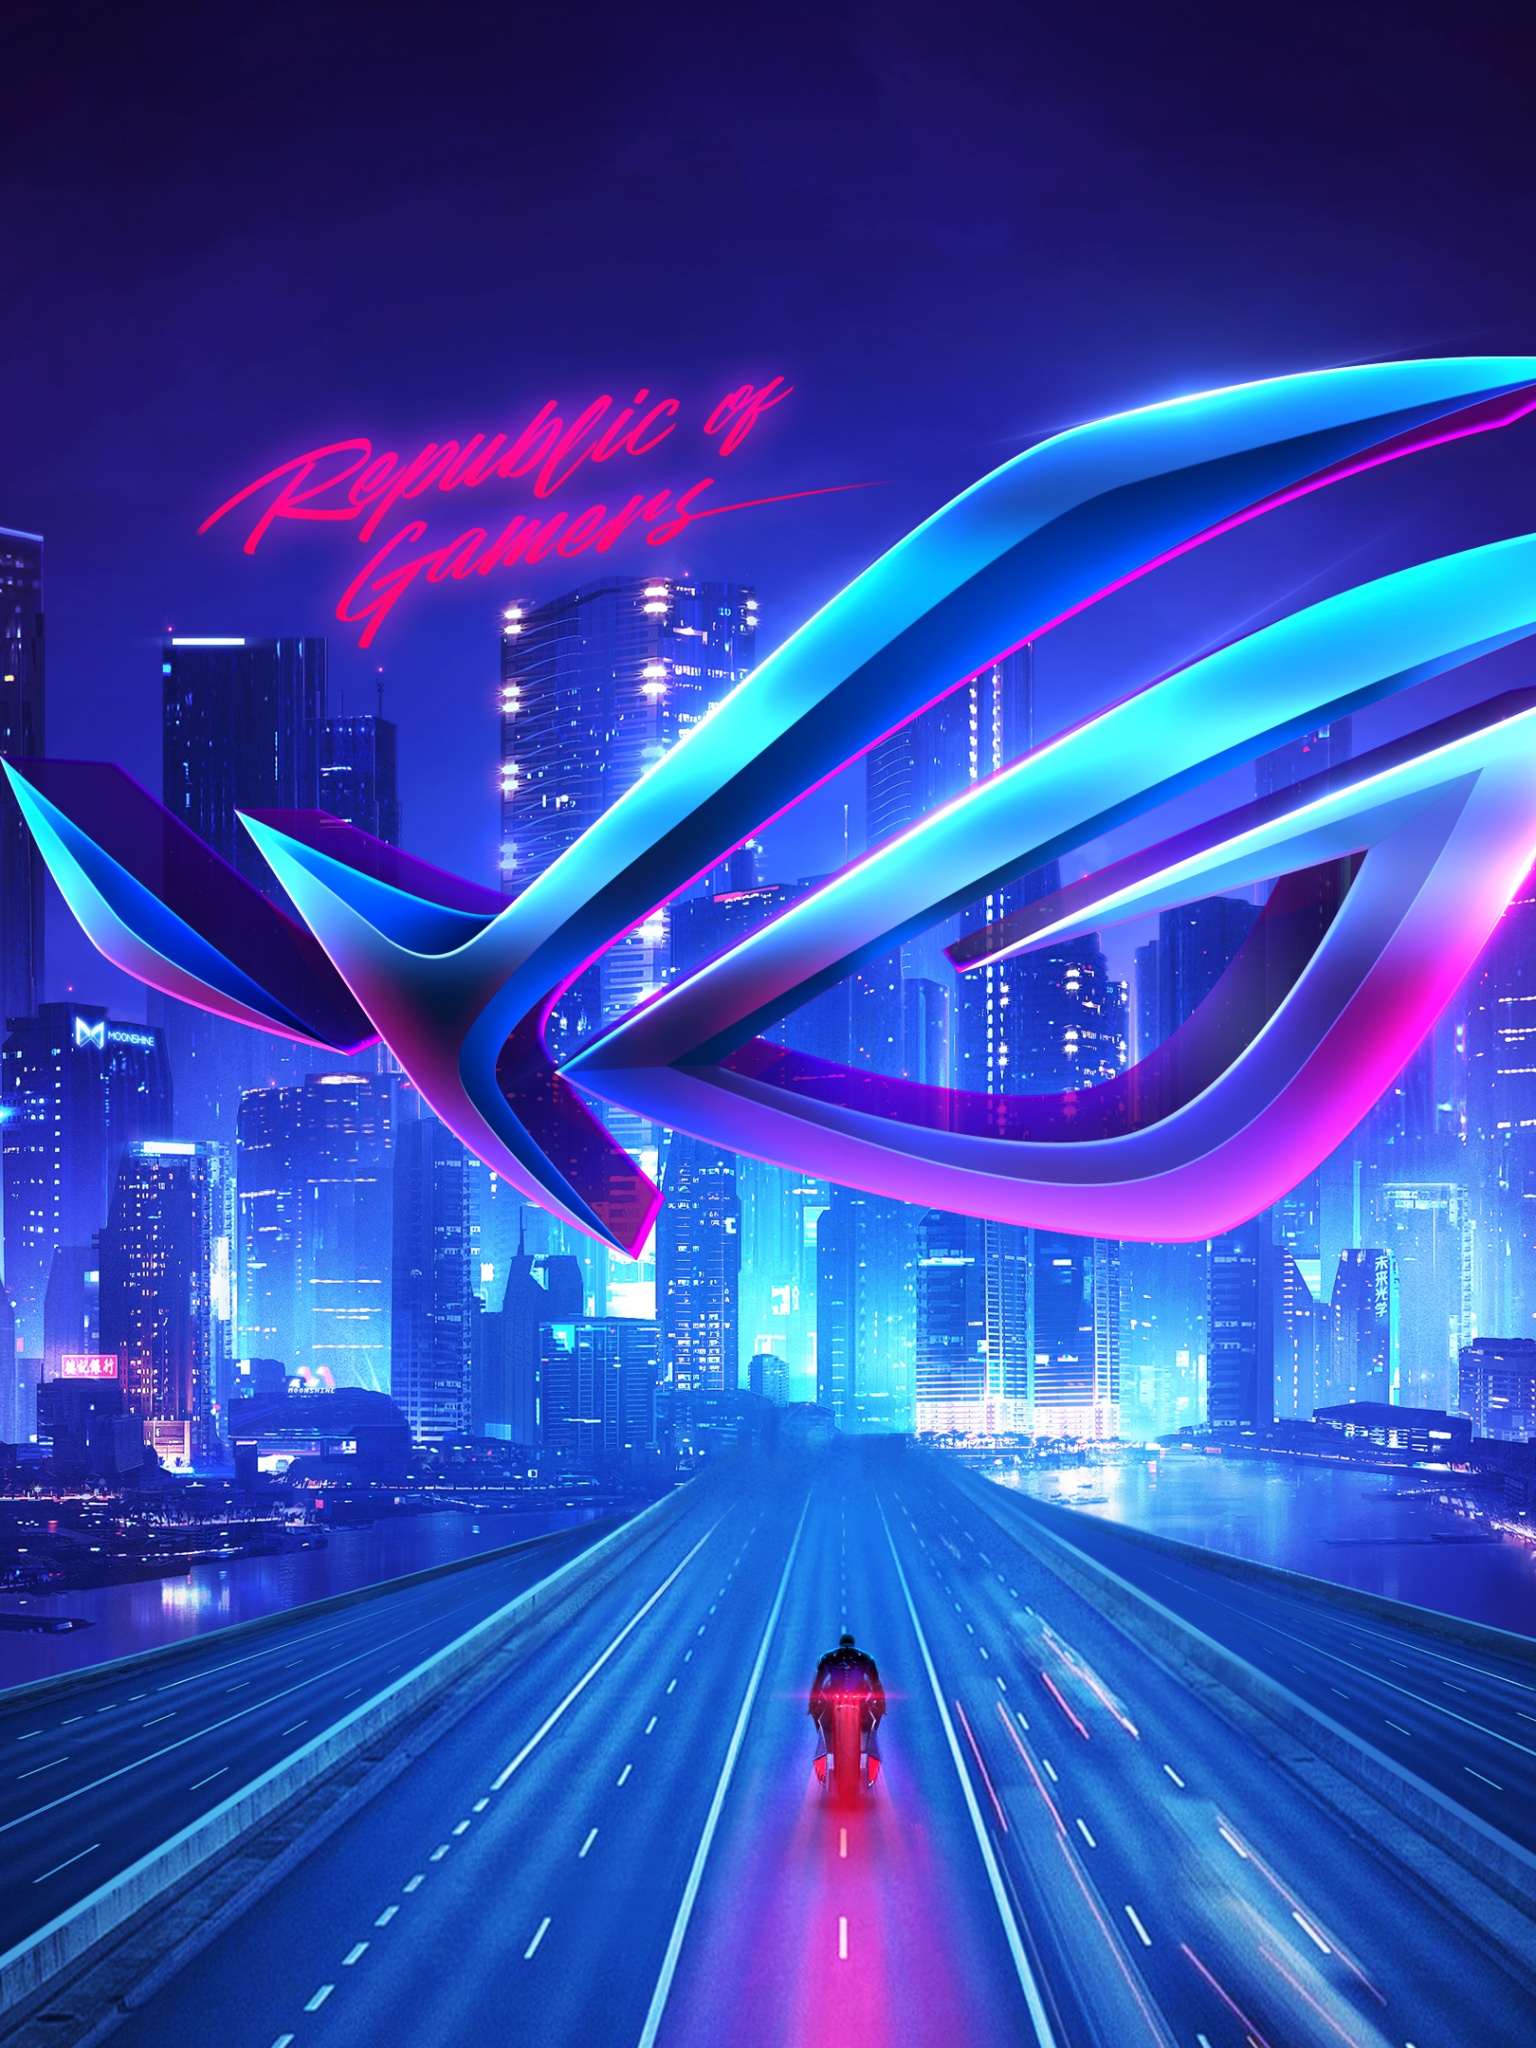 Republic Of Gamers 4k Wallpaper Asus Rog Cityscape Neon Technology 129